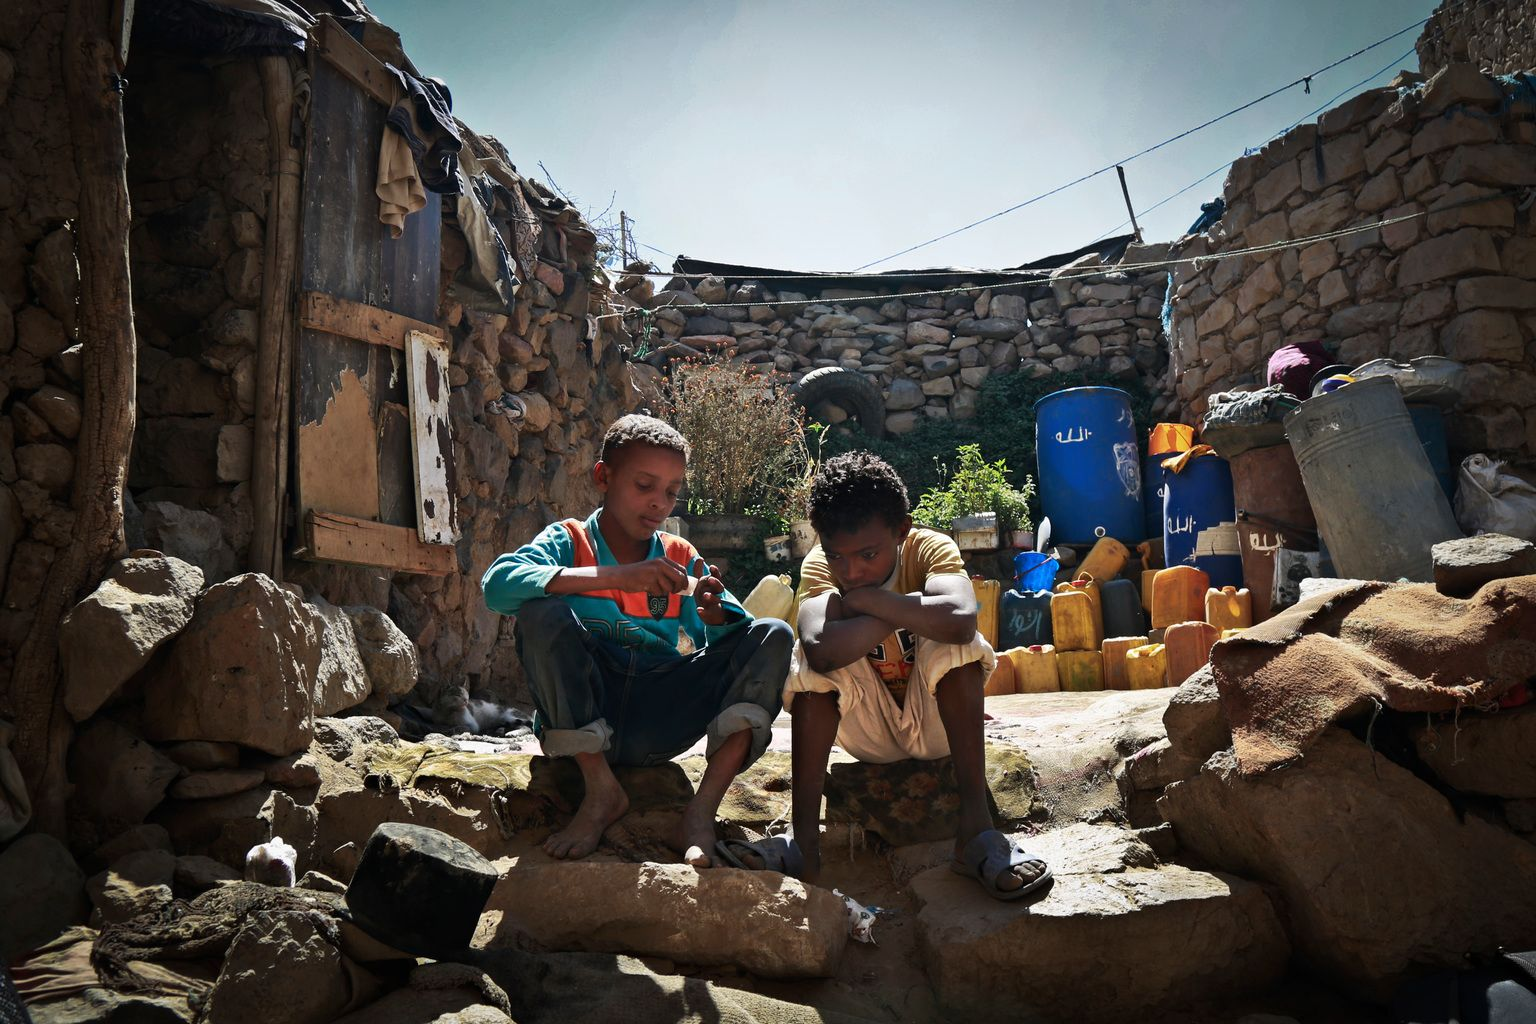 28 March 2016 - Anwar, right, sits with a friend inside his family's house in Sana'a, Yemen. A brutal conflict and a fast-deteriorating humanitarian situation are devastating the lives of millions of children in Yemen and have brought the country to the point of collapse. © UNICEF/UN013948/Shamsa